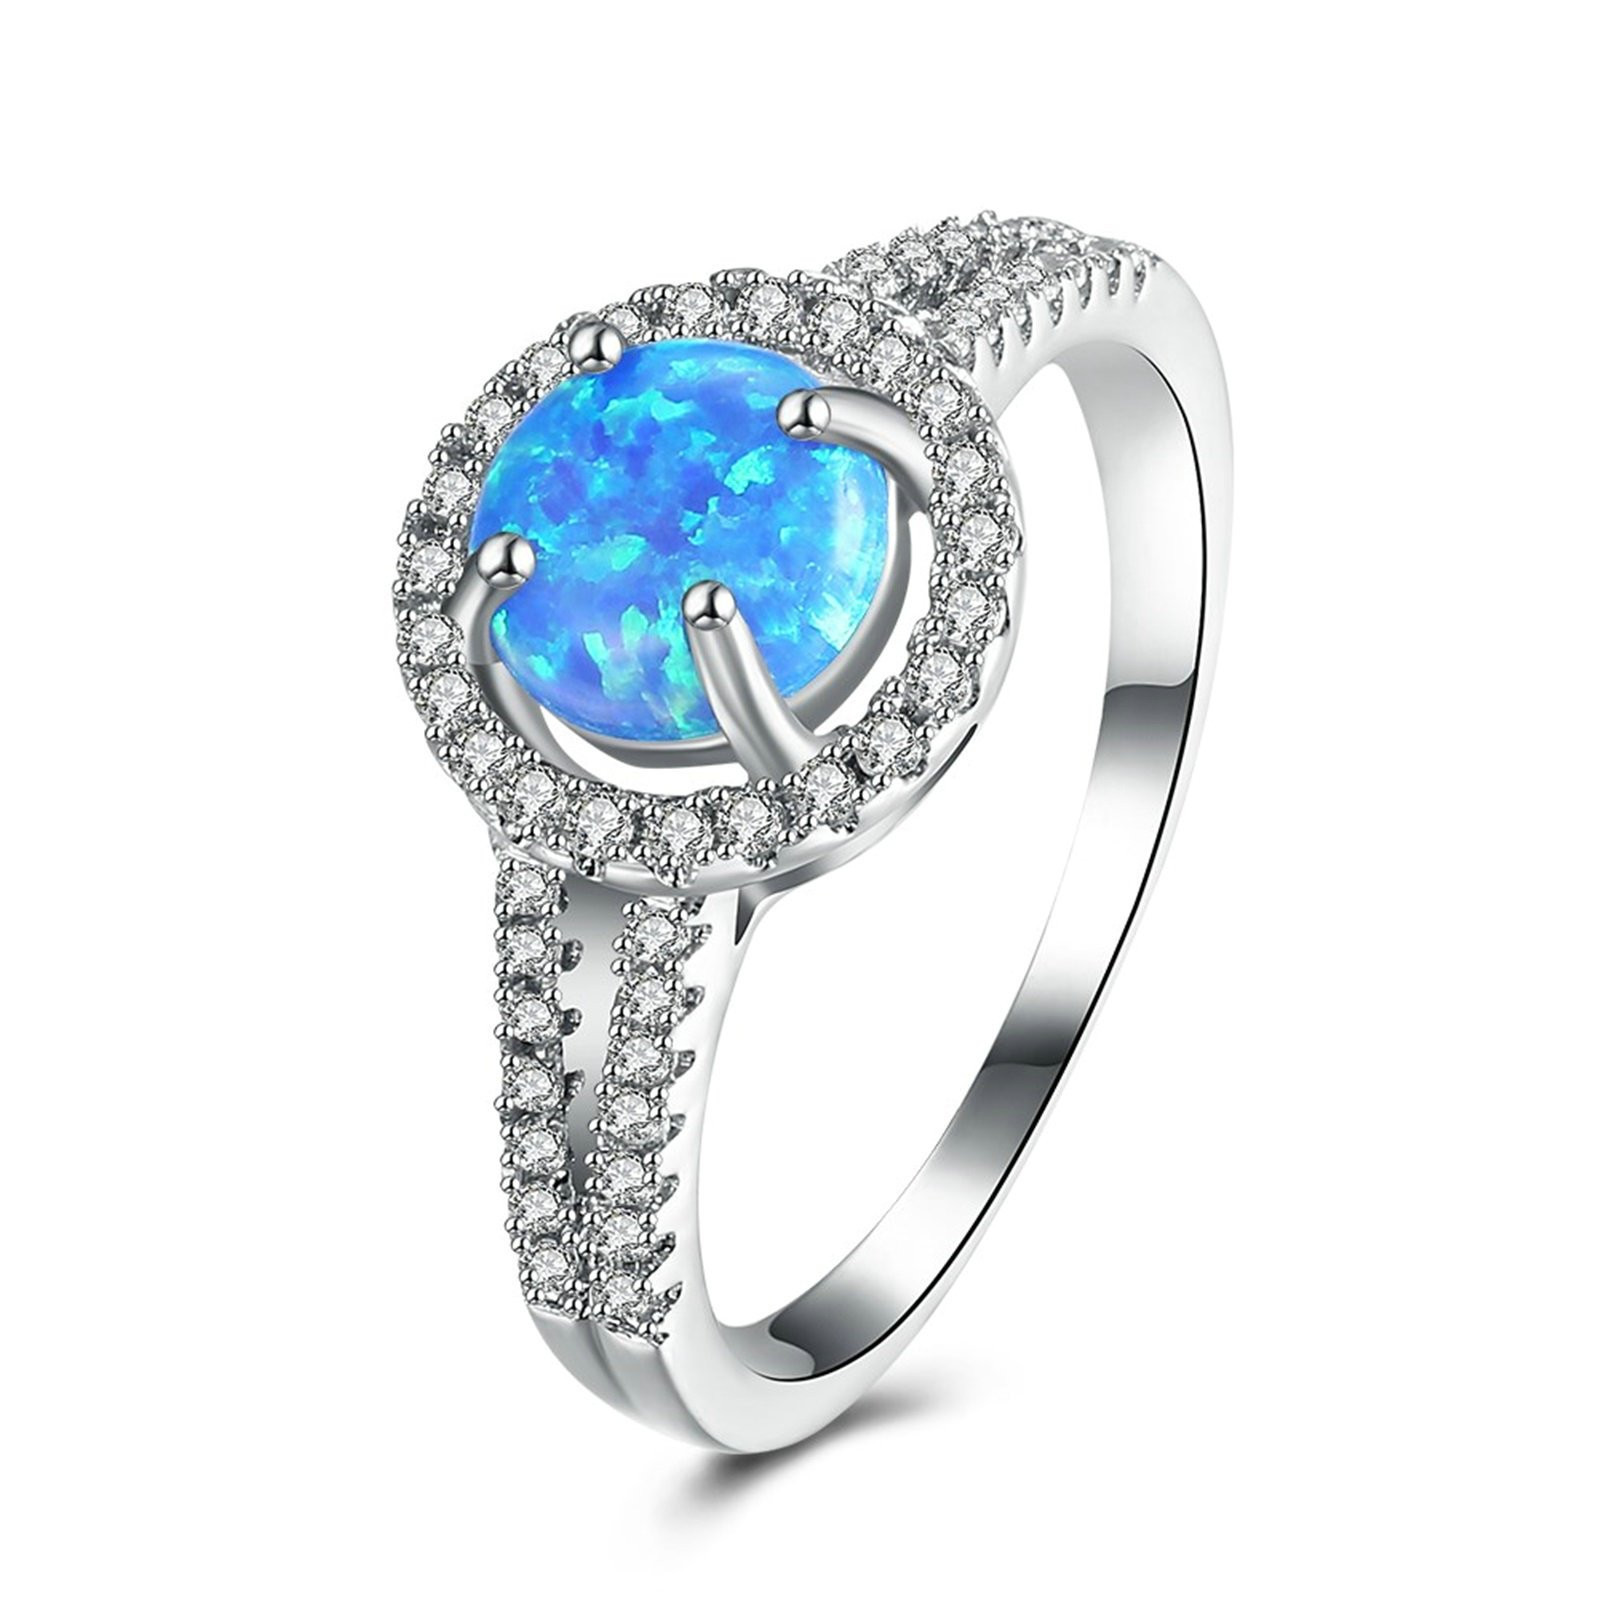 MoAndy Silver Plated Ring For Women Four Setting Prong Sappire Cubic Zirconia Size 9